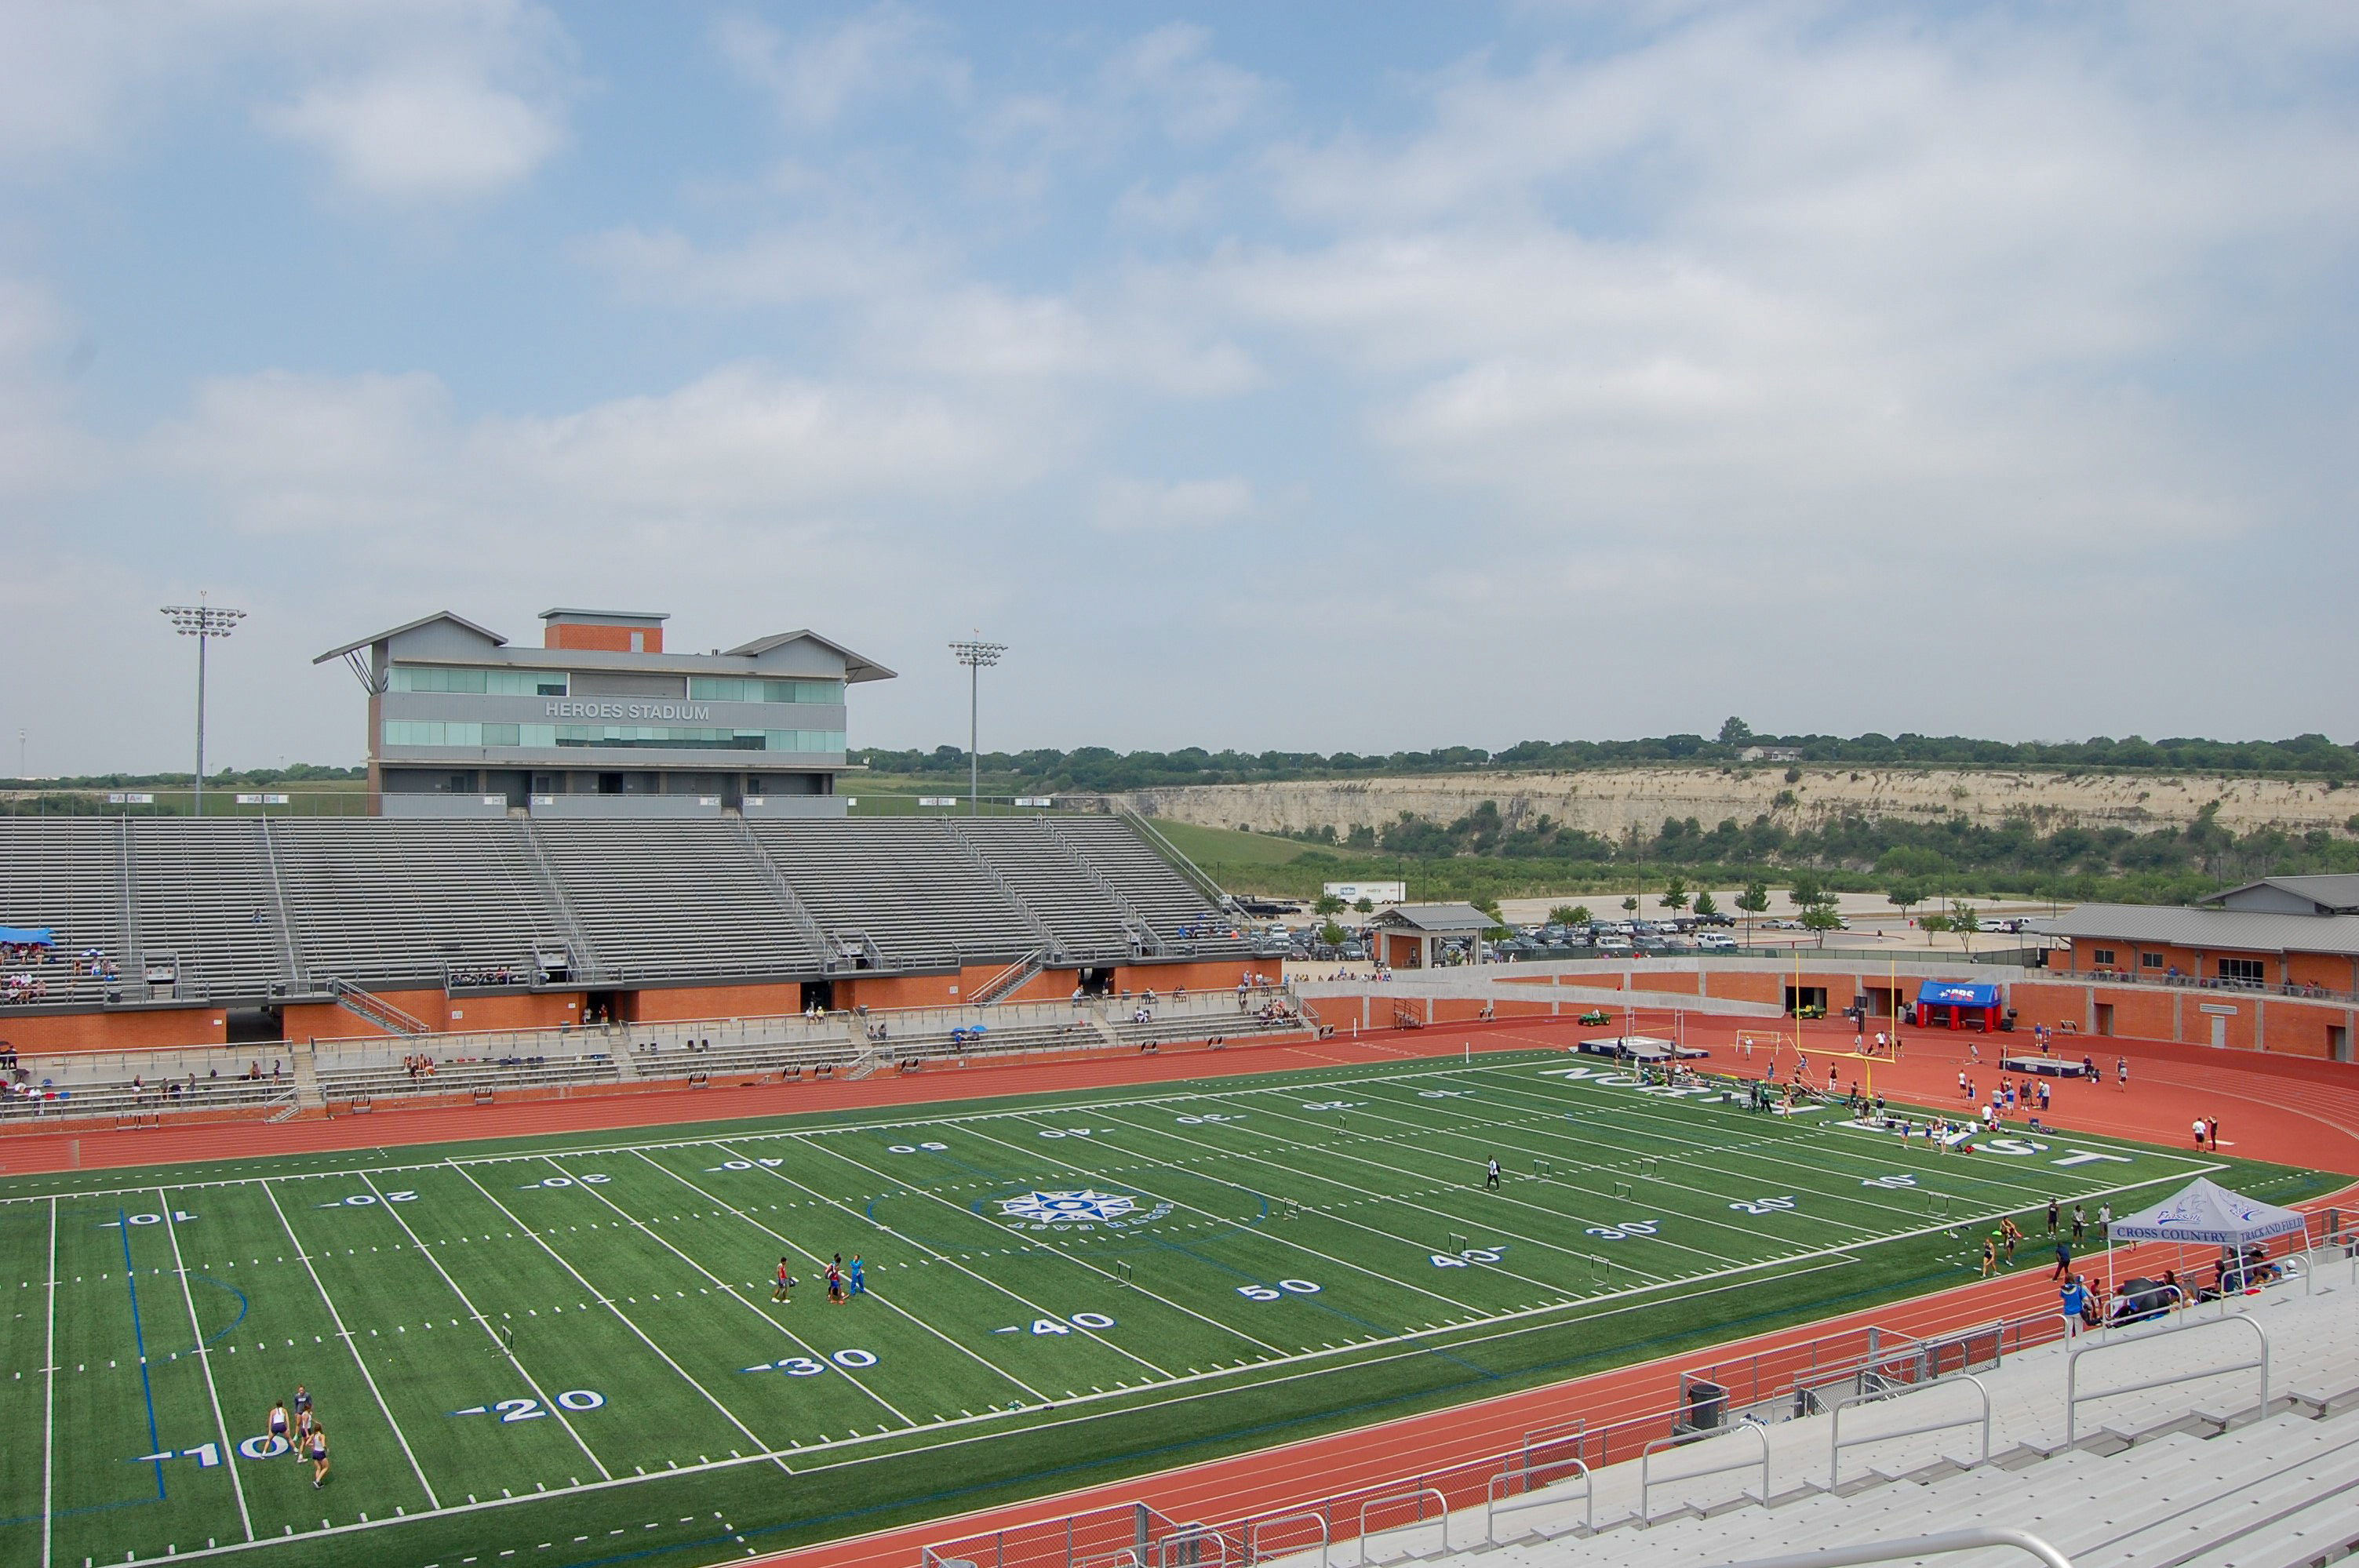 North East ISD Heroes Stadium